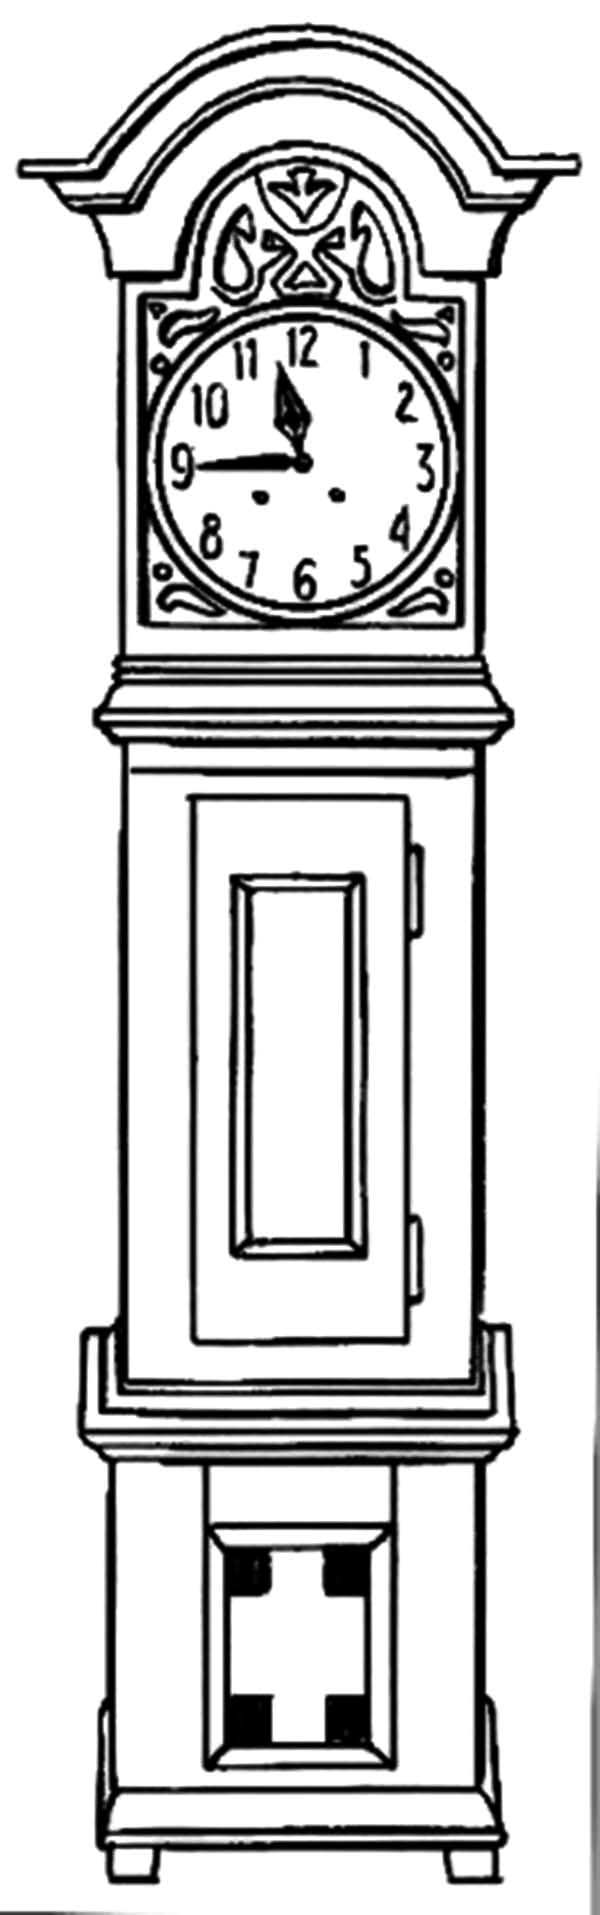 Grandfather Clock, Grandfather Clock With Pine Case Coloring Pages: Grandfather Clock with Pine Case Coloring Pages